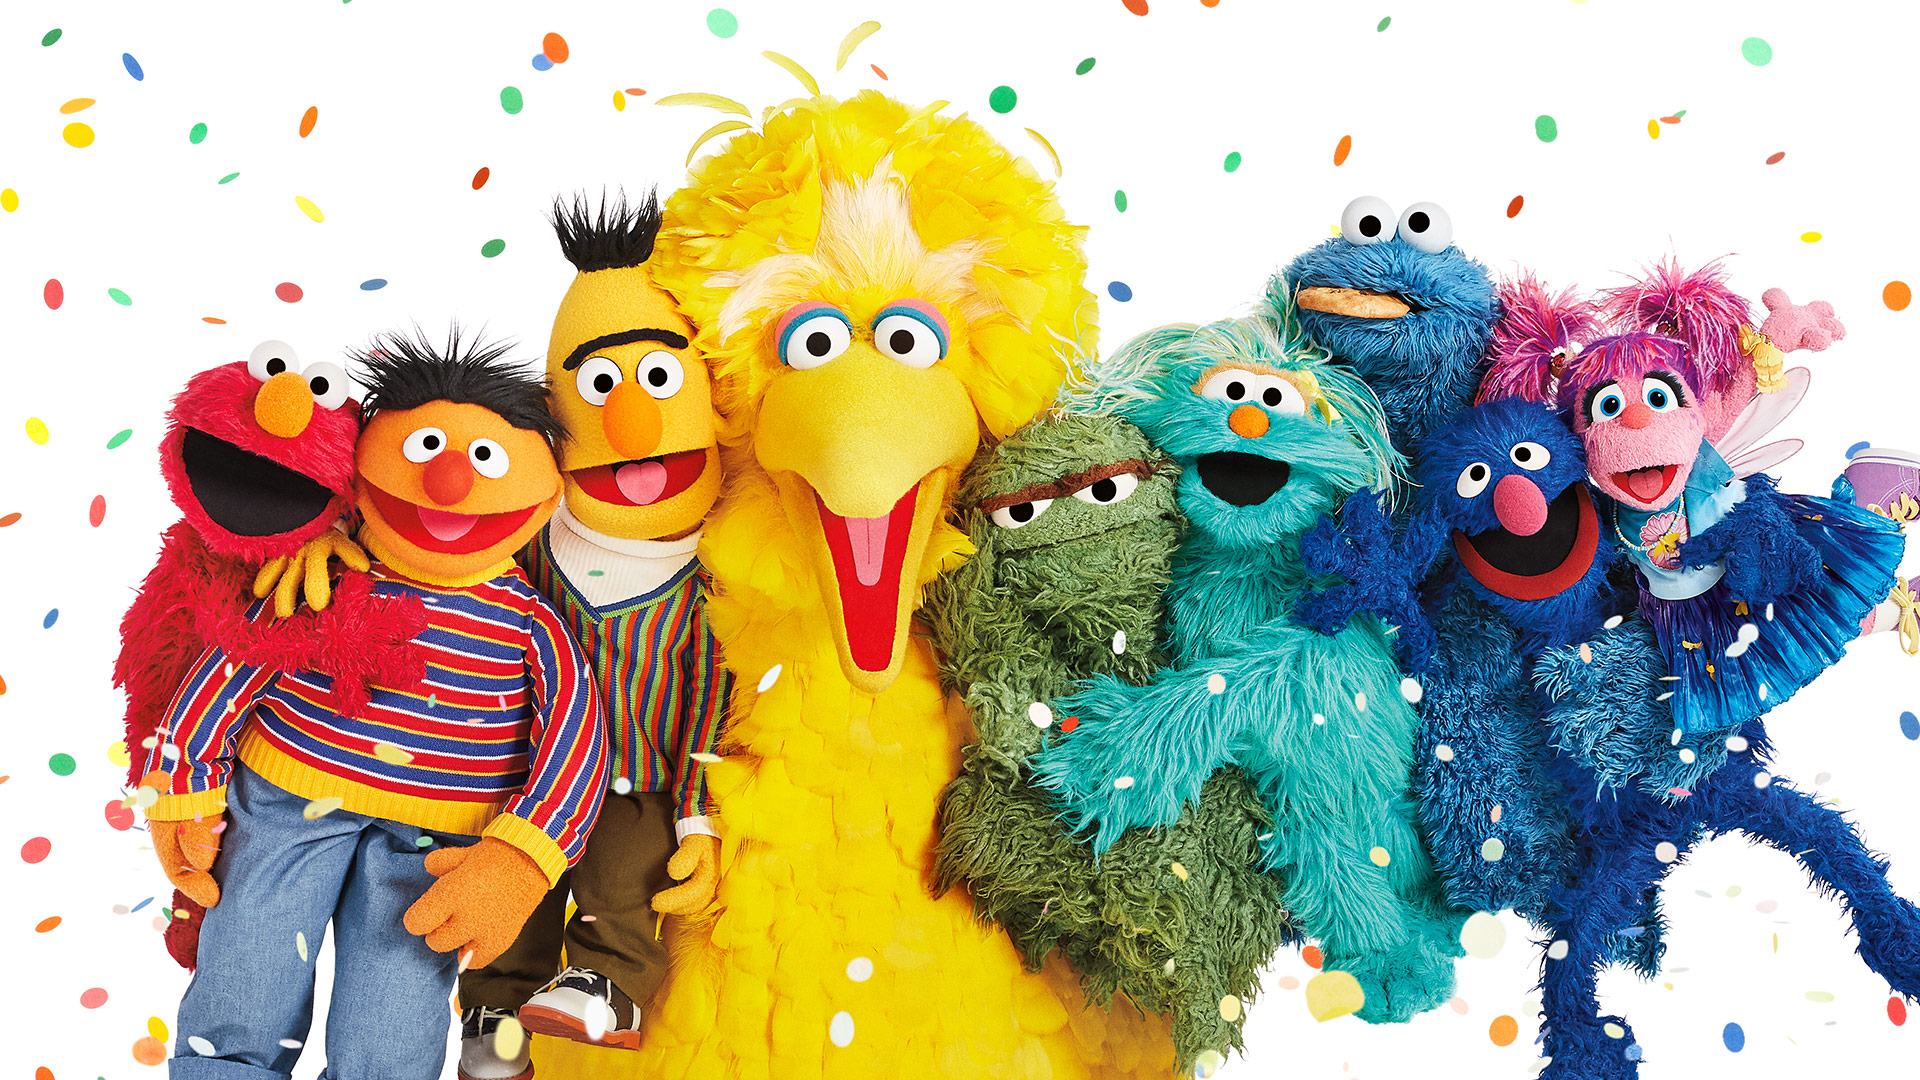 Sesame Street eBooks are free on Amazon, Google Play, and other platforms